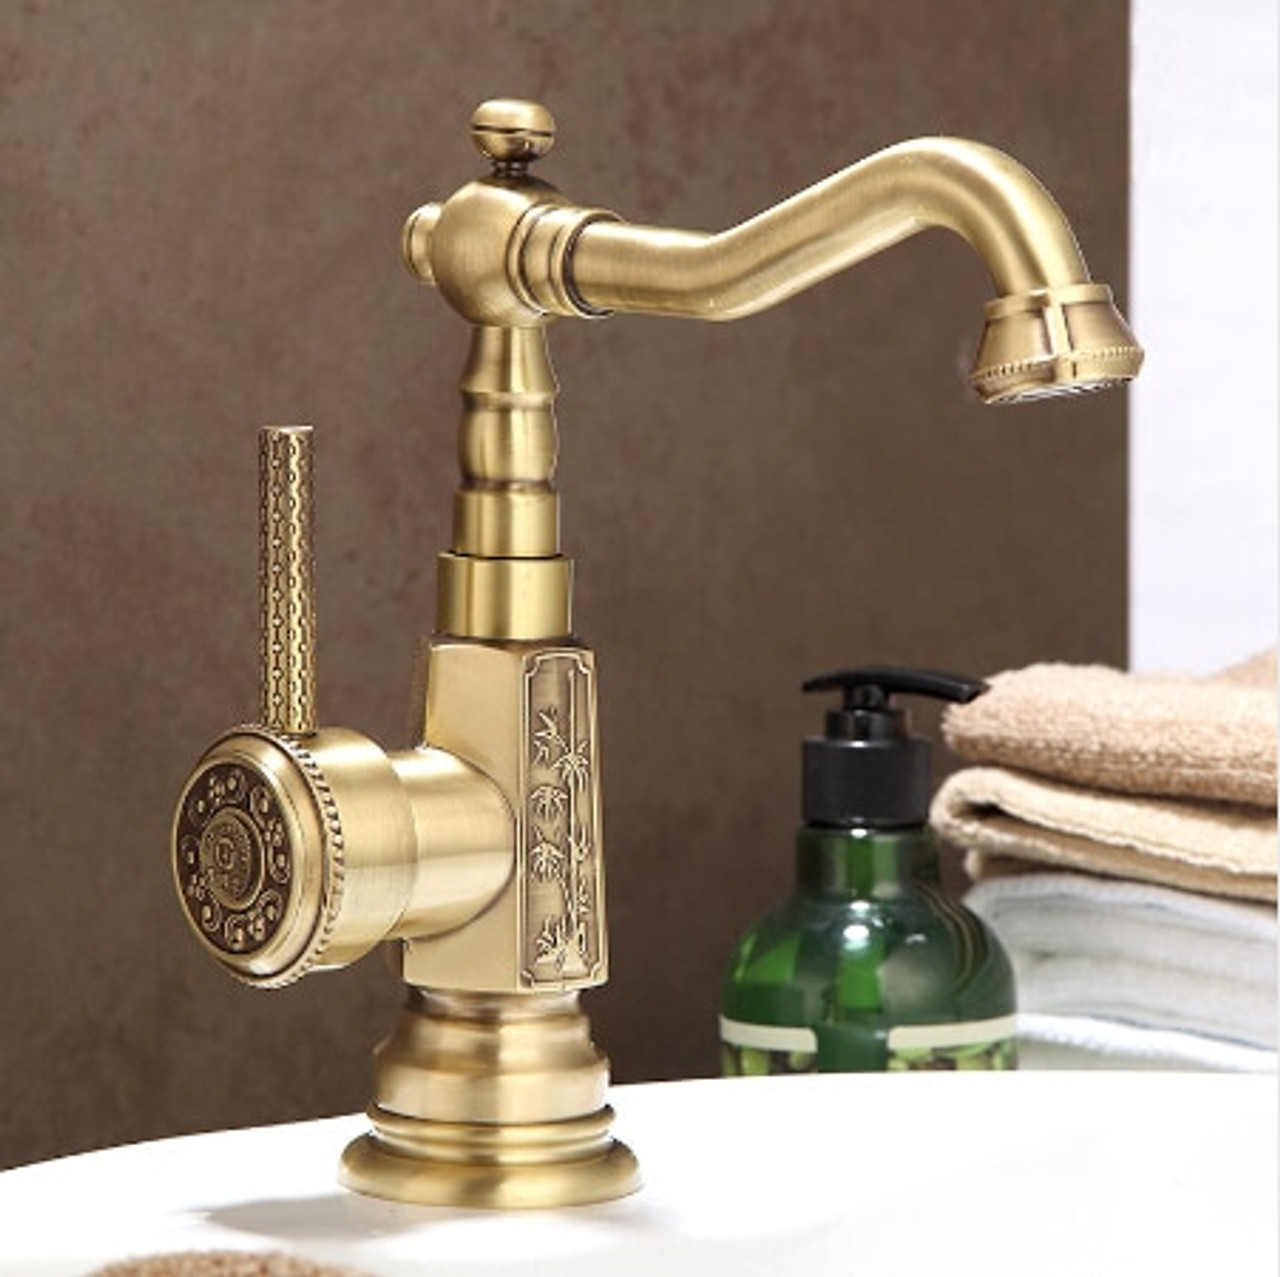 newly wholesale and retail deck mounted basin faucet vintage antique brass bathroom sink basin faucet mixer tap kitchen faucet